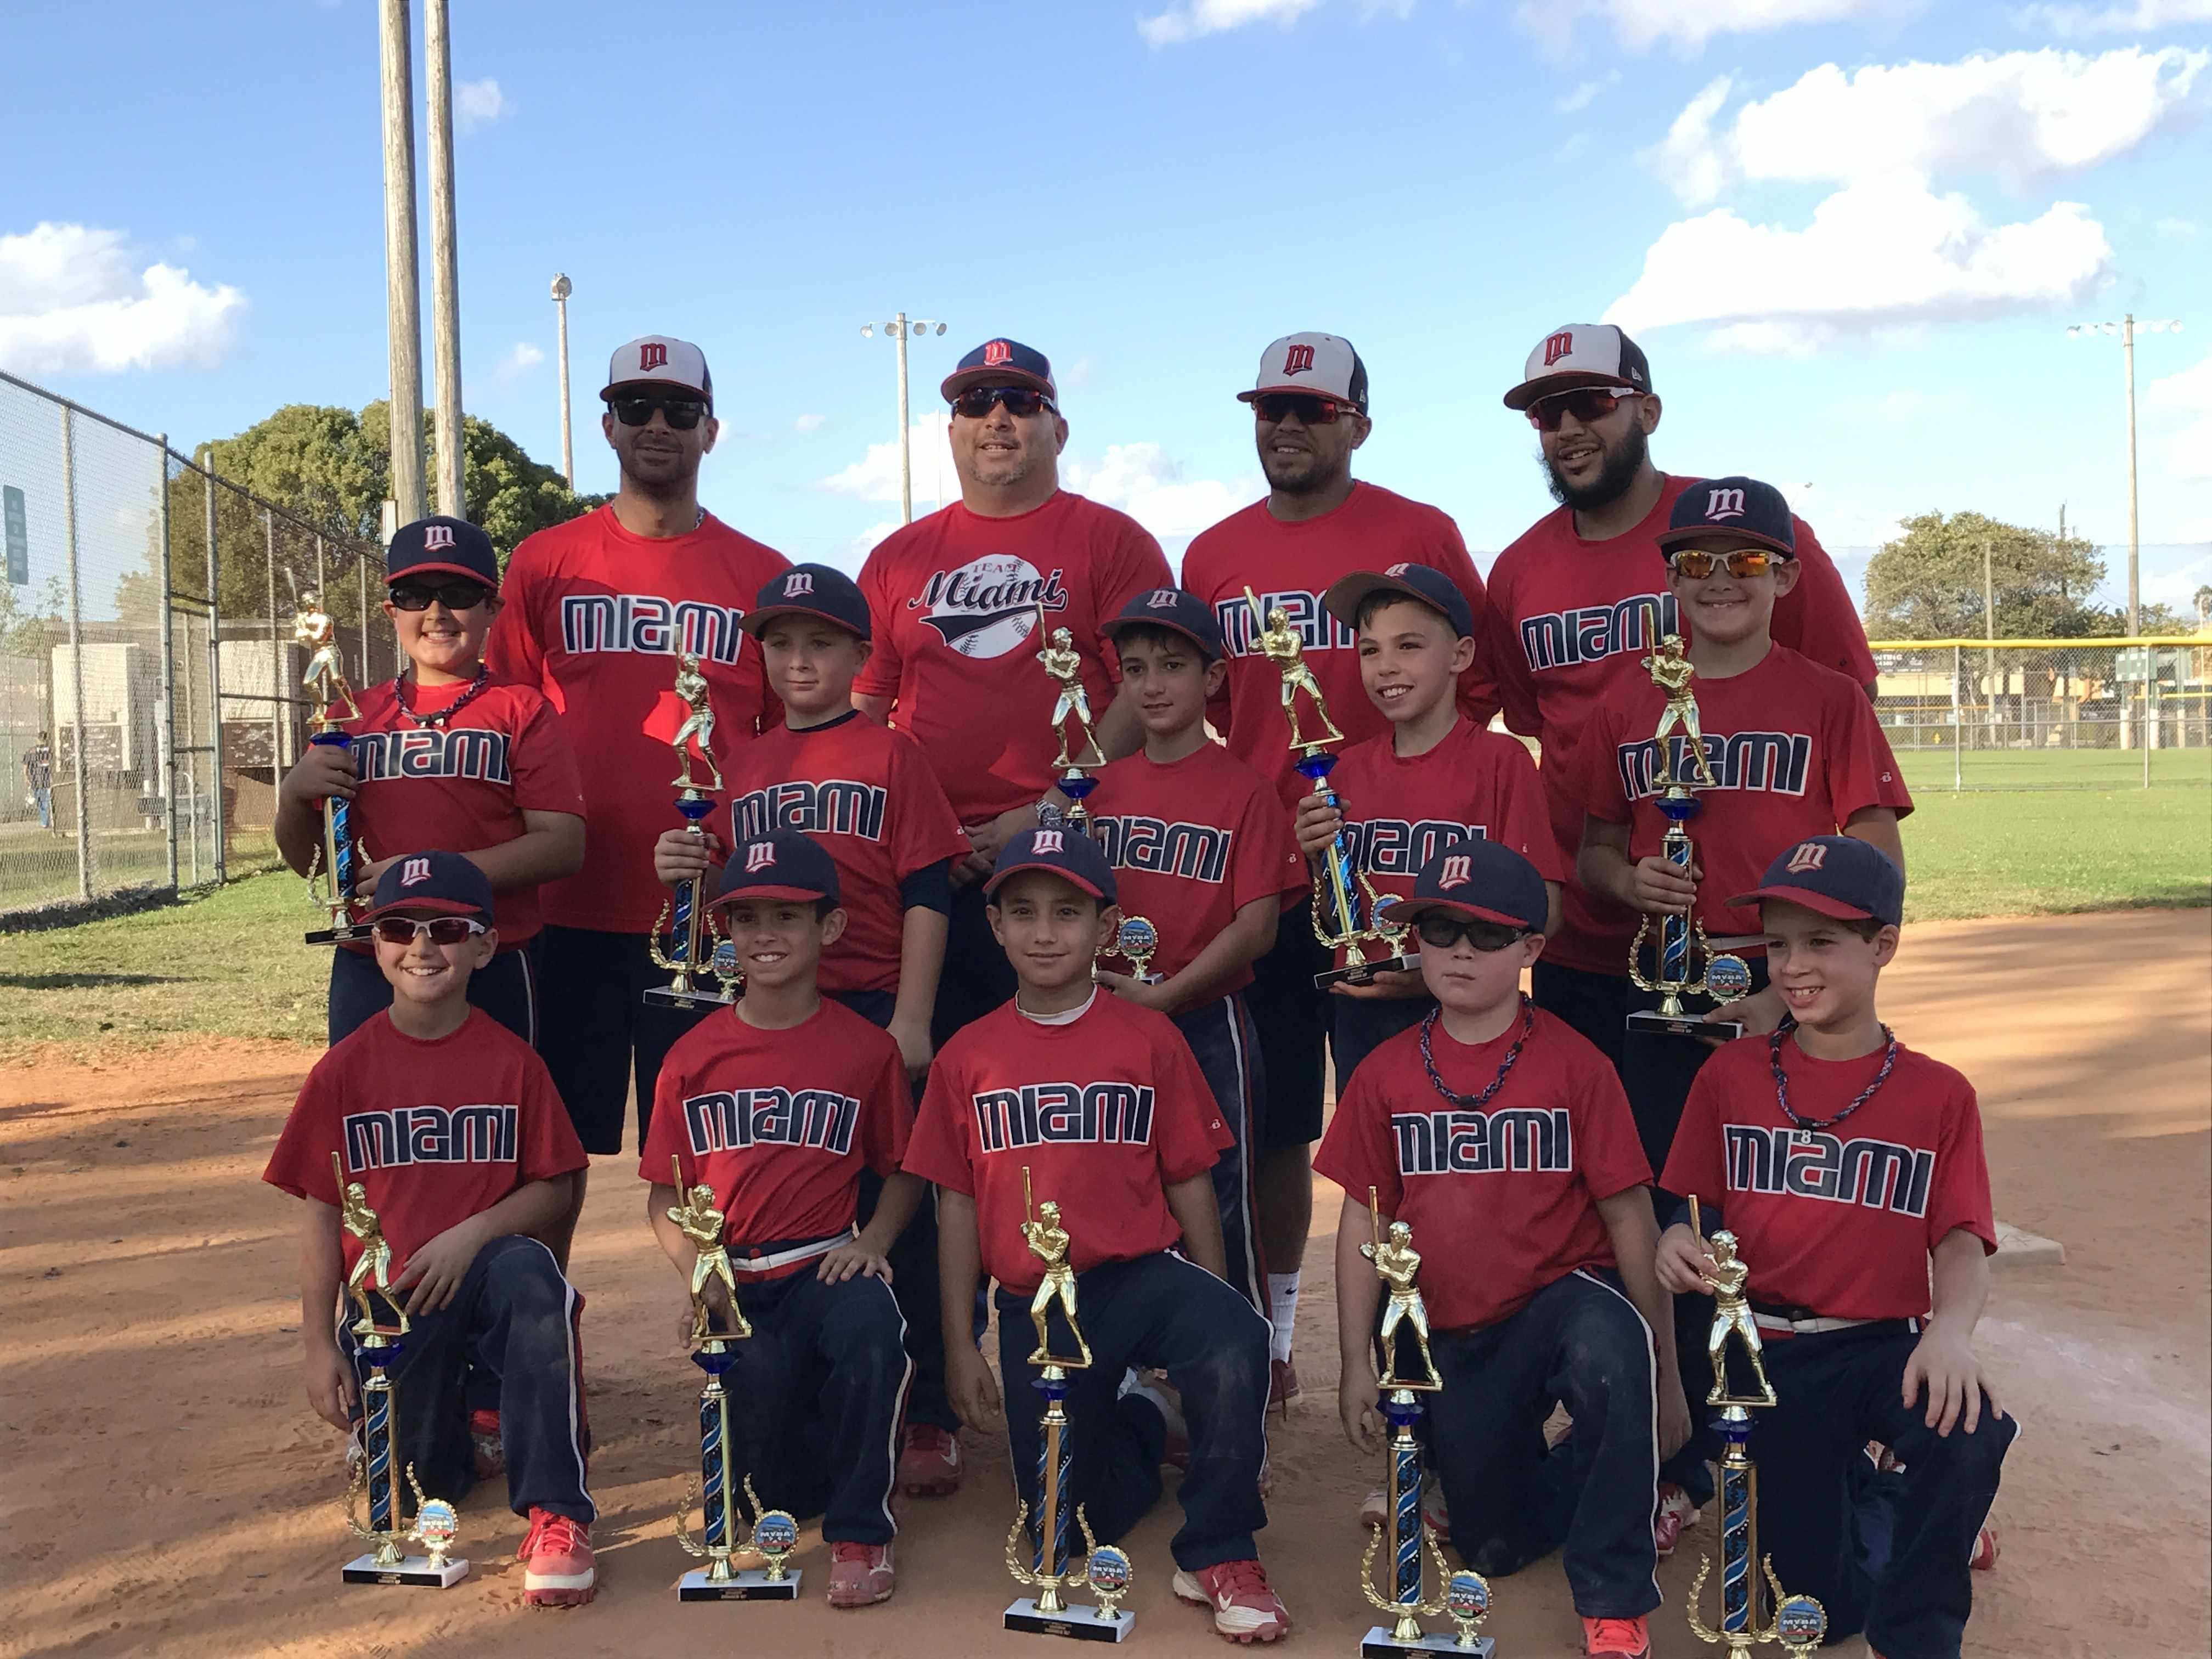 Myba tournament site 9u team miami runner ups malvernweather Choice Image